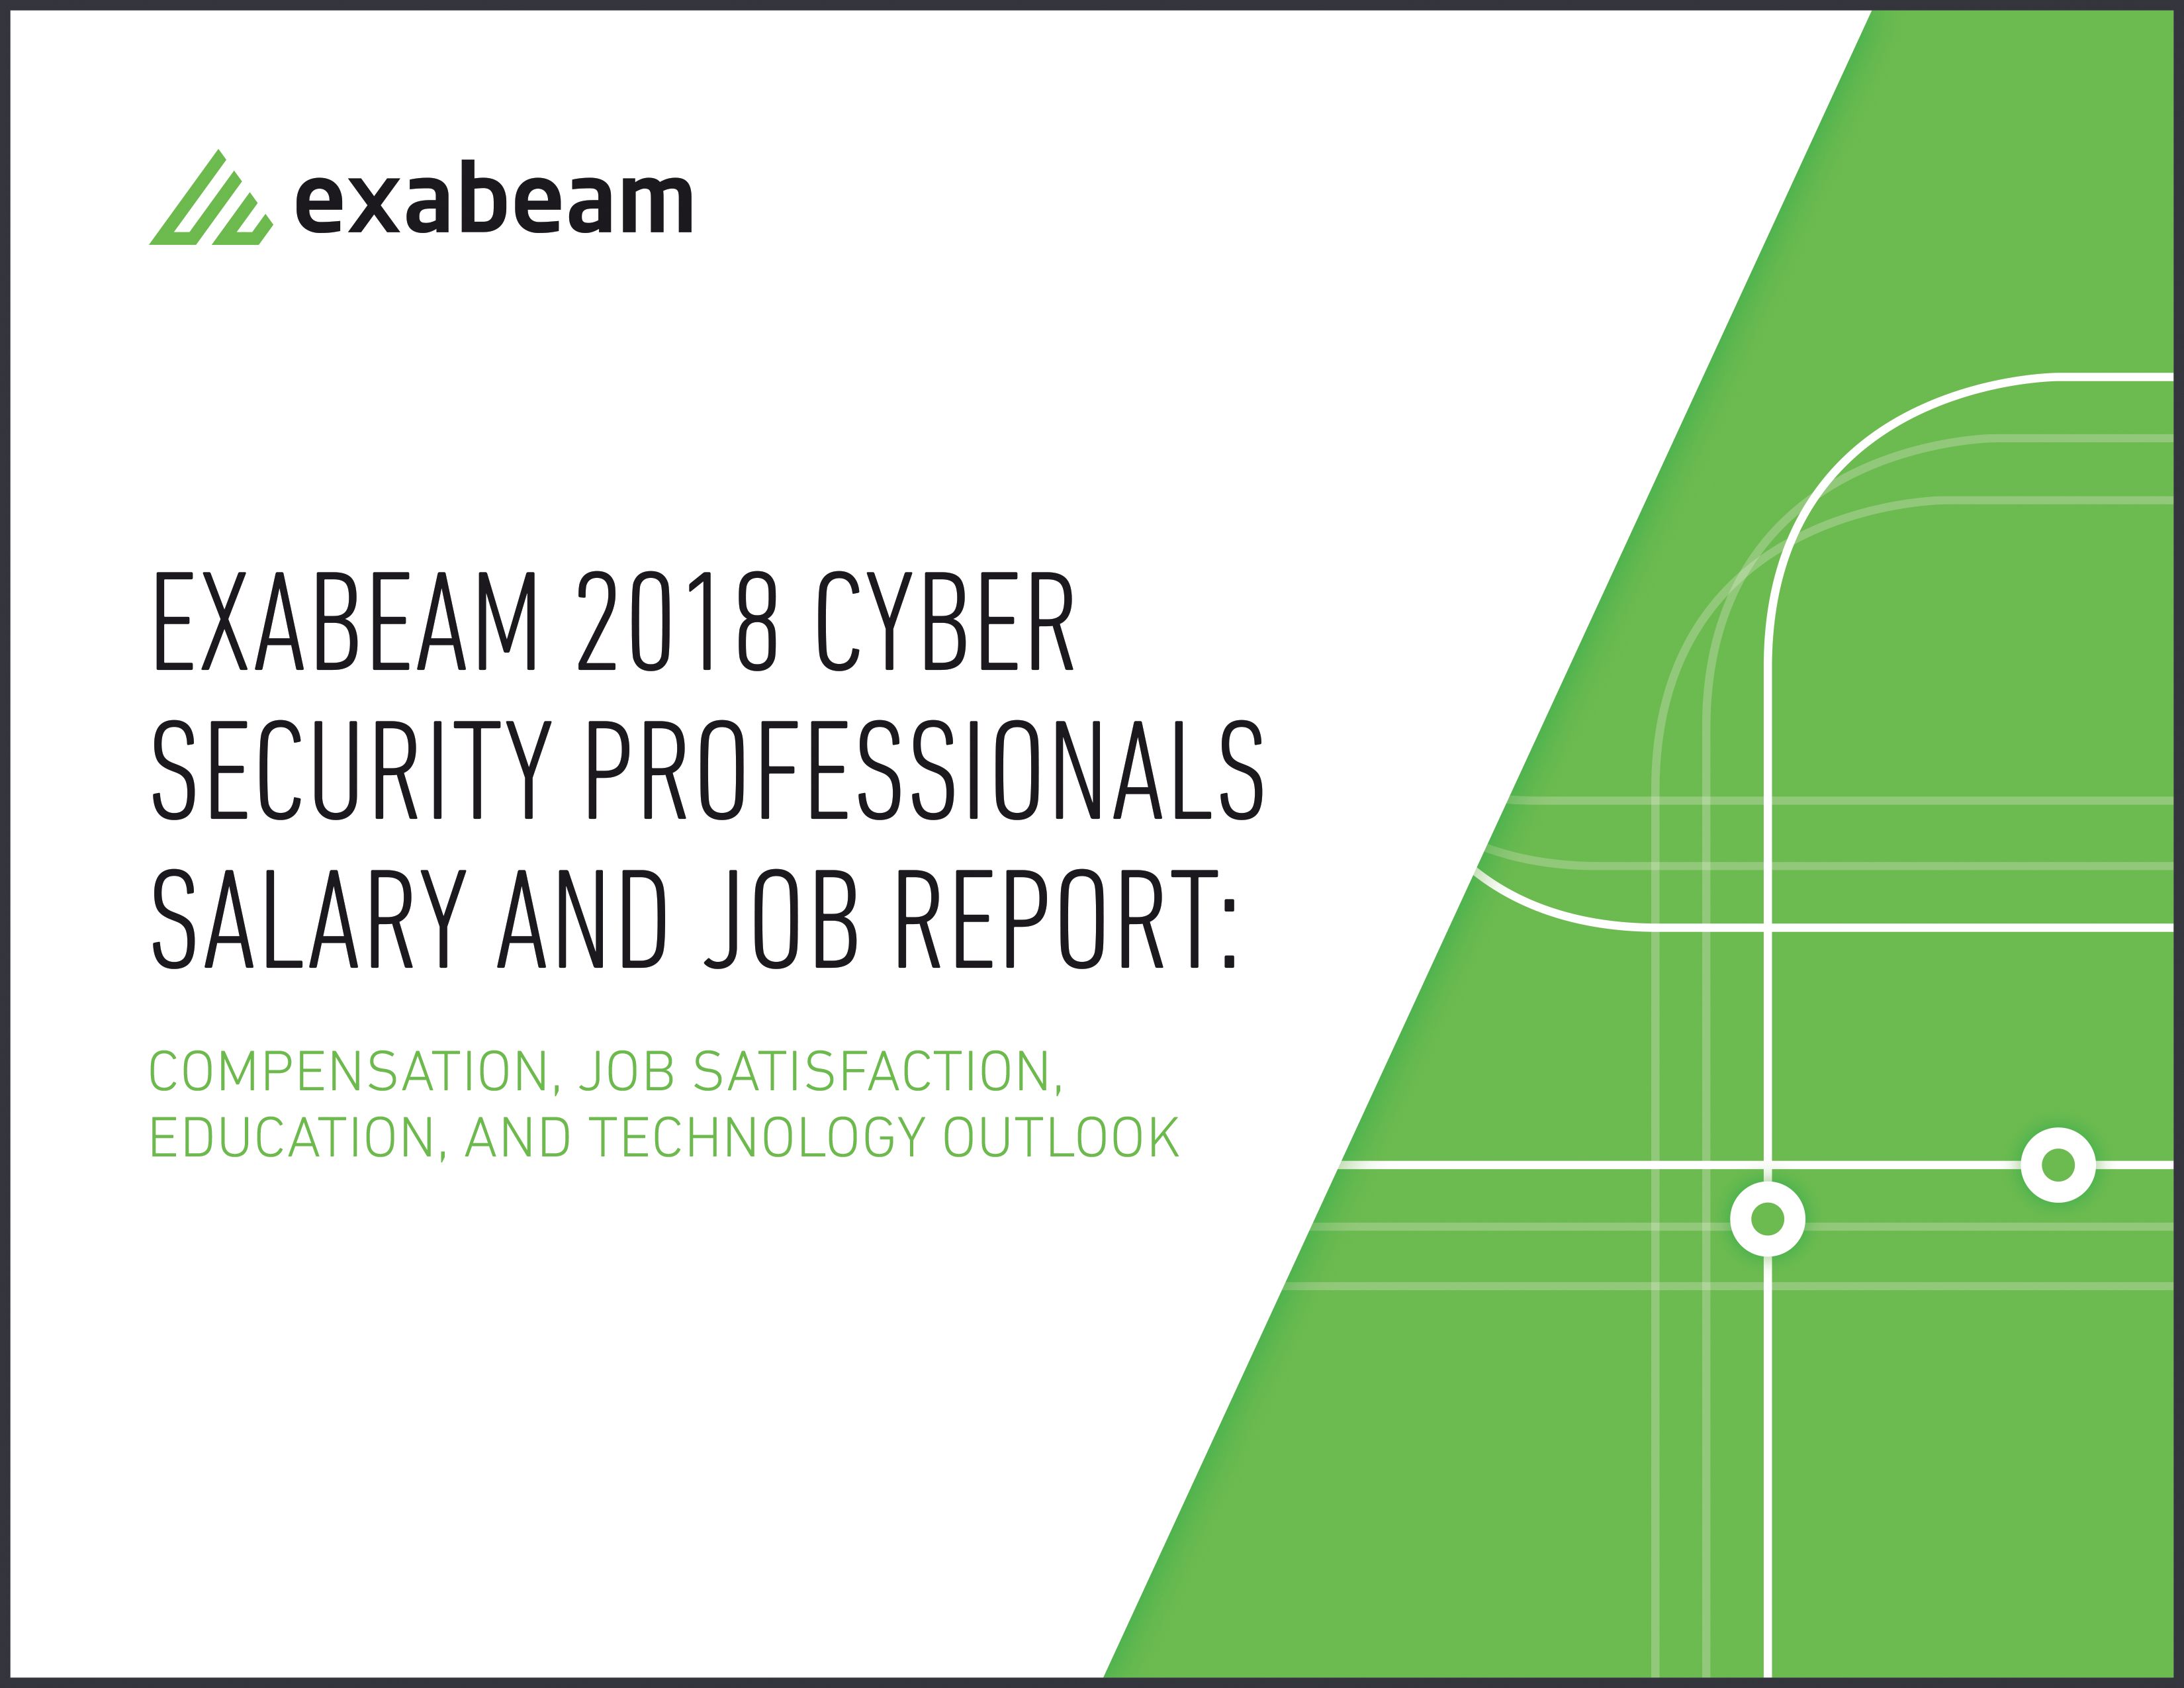 2018 Cyber Security Professionals Salary and Job Report